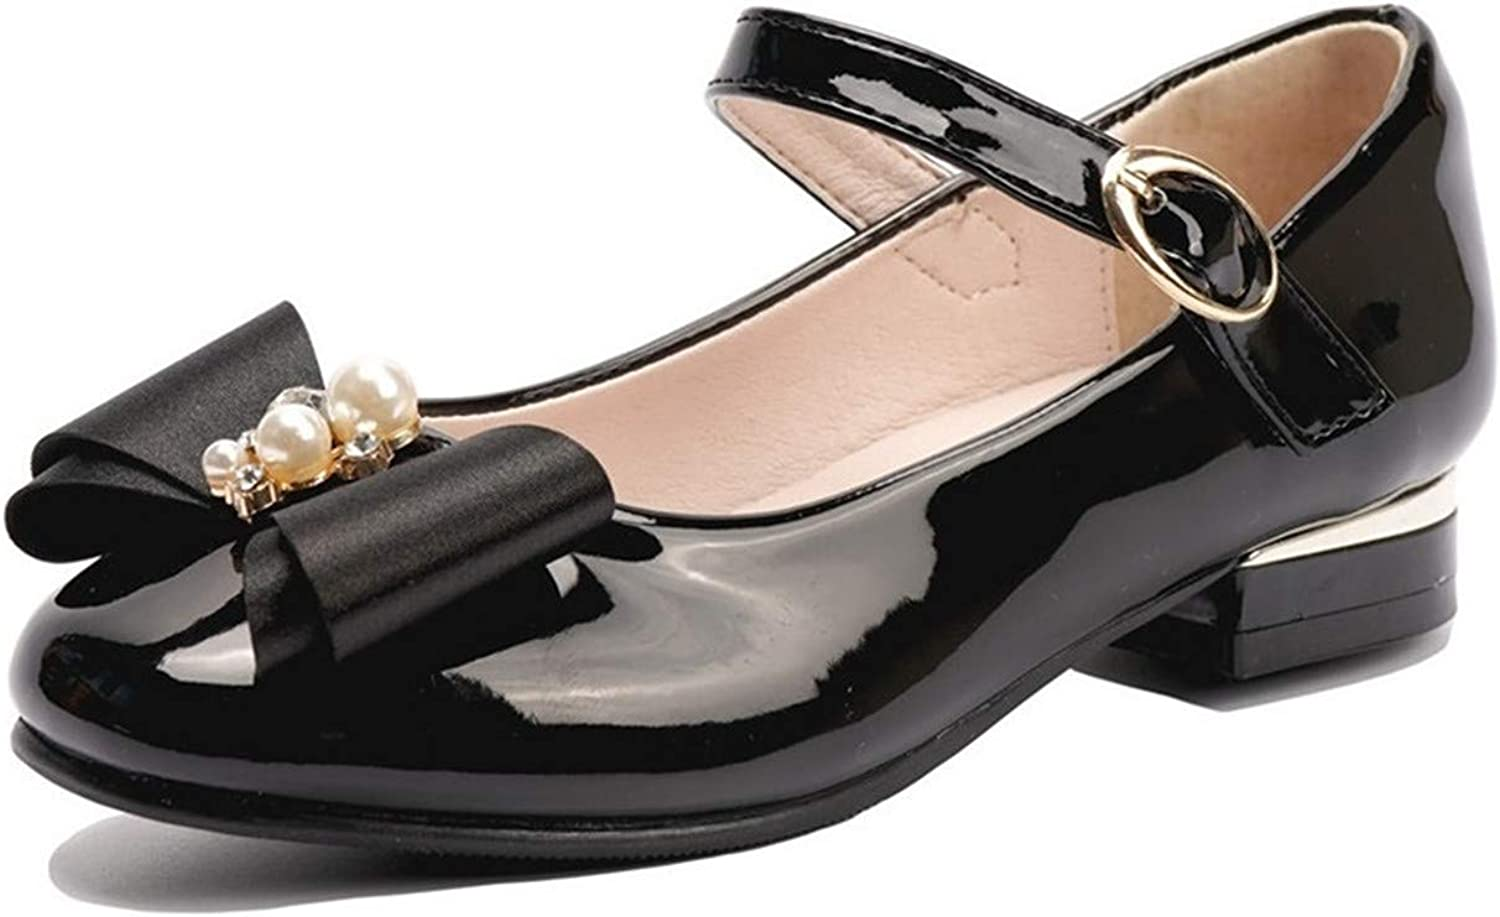 Flyrioc Manufacturer regenerated product Little Girls Dress Shoes At the price of surprise Mary Flats Jane Low Heel Weddin